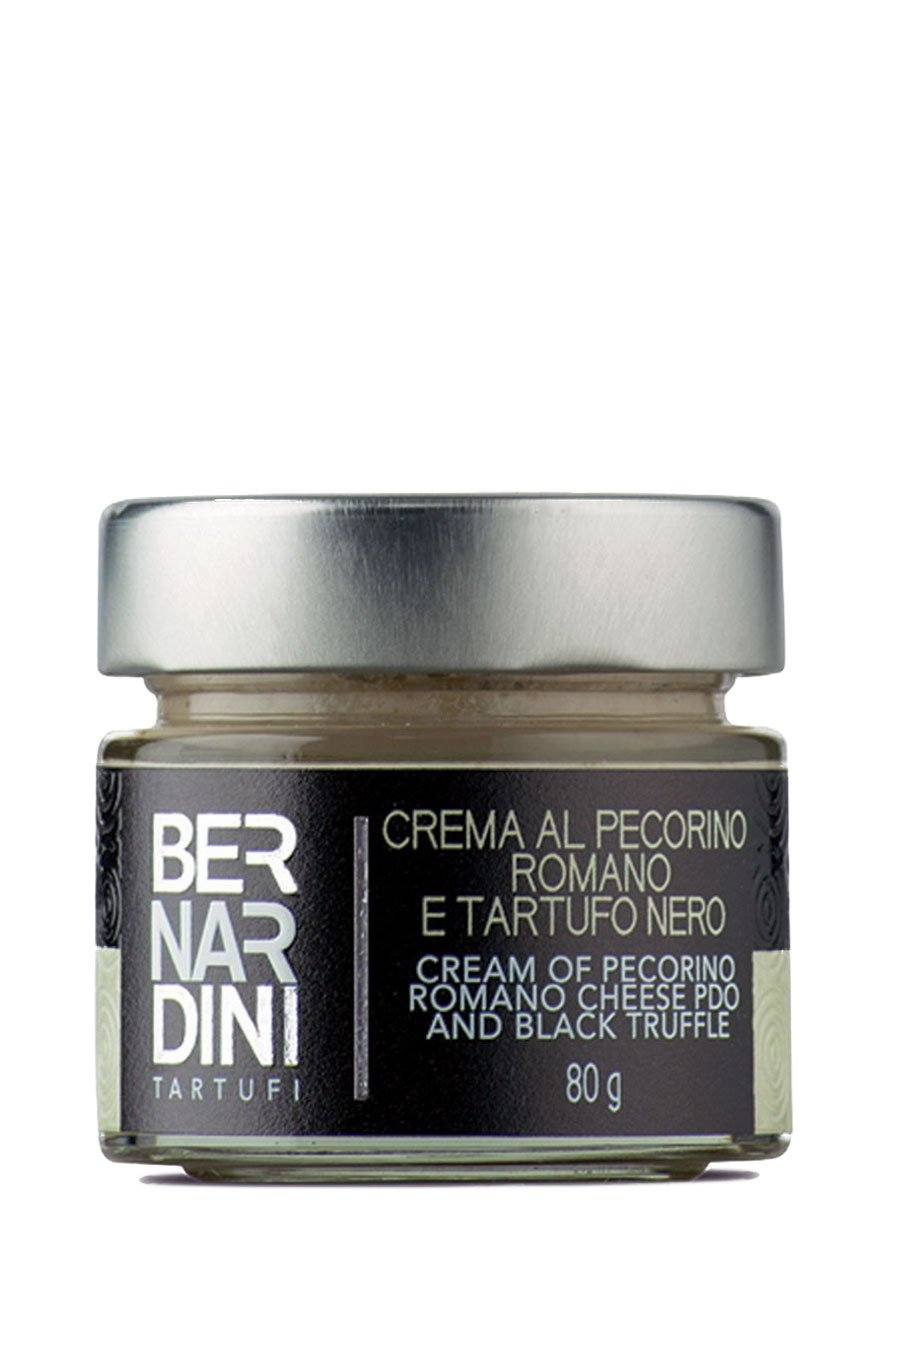 Cream of Pecorino Romano Cheese PDO and Black Truffle 80g - Agrumia